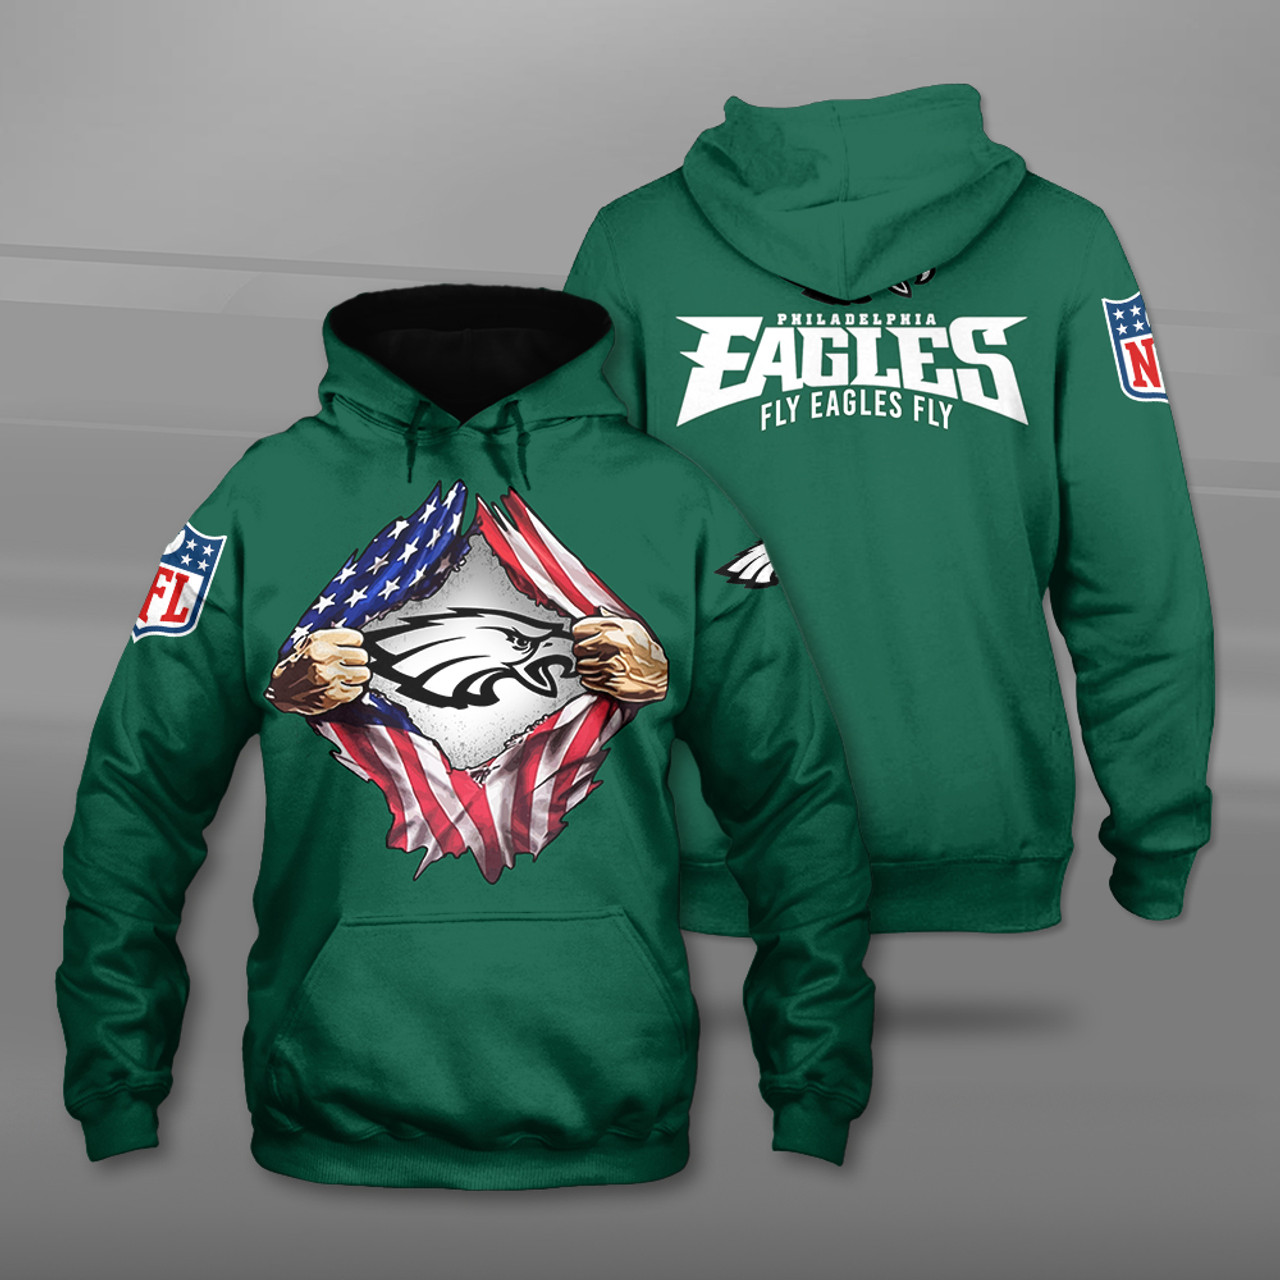 **(OFFICIAL-N.F.L.PHILADELPHIA-EAGLES-TEAM-PULLOVER-HOODIES/CUSTOM-3D-EAGLES-OFFICIAL-LOGOS & OFFICIAL-CLASSIC-EAGLES-TEAM-COLORS/DETAILED-3D-GRAPHIC-PRINTED-DOUBLE-SIDED-DESIGN/PREMIUM-N.F.L.EAGLES & U.S.A.PATRIOTIC-FLAG-THEMED-PULLOVER-HOODIES)**